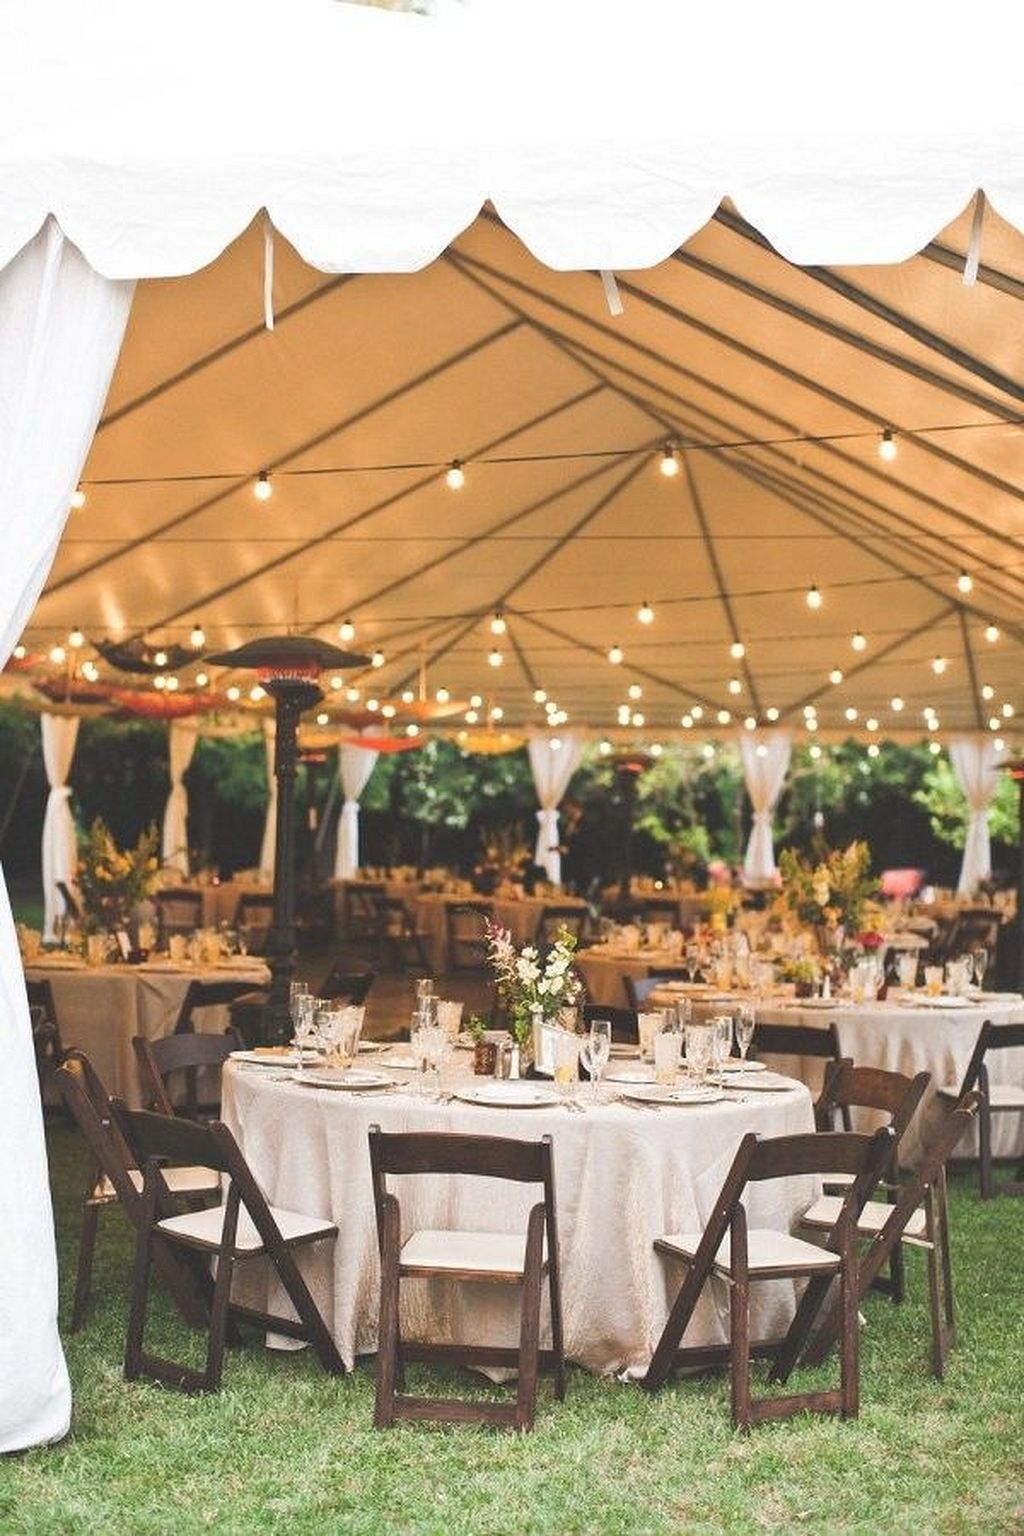 Amazing 40 Wonderful Backyard Wedding Ideas https://weddmagz.com/40-wonderful-backyard-wedding-ideas/